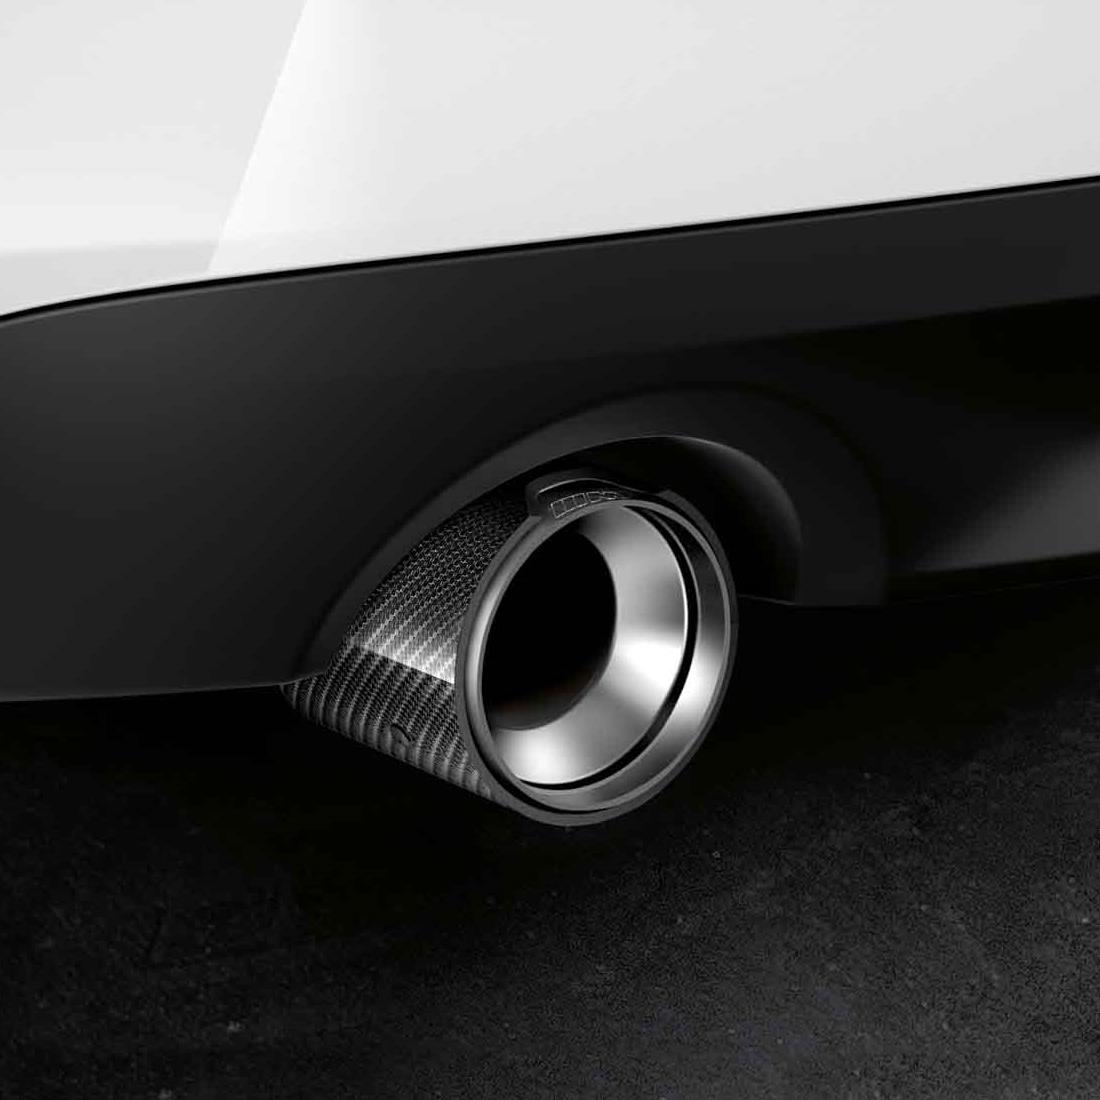 BMW M Performance Carbon Fiber Tailpipe Trim